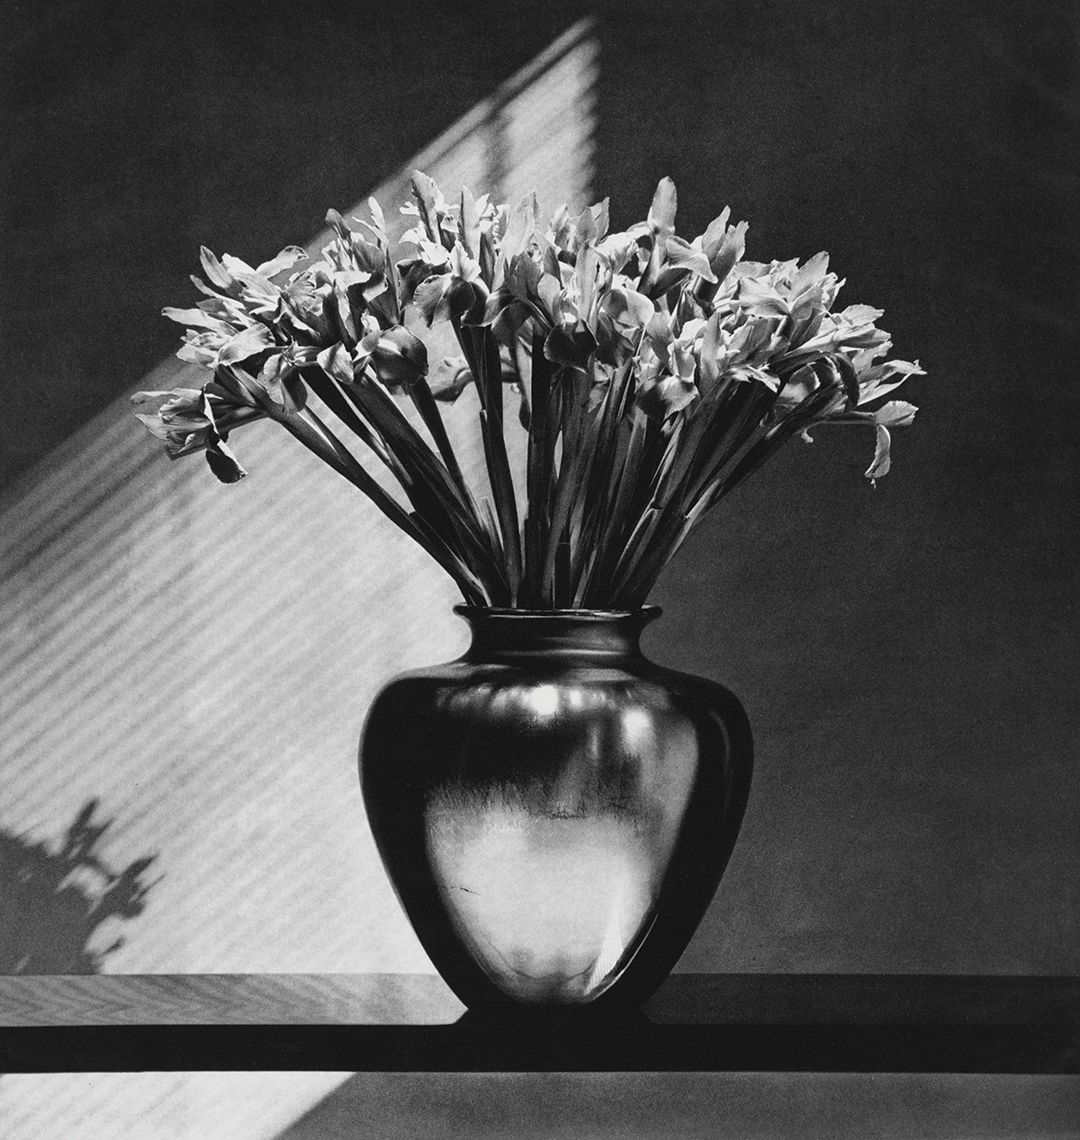 Robert Mapplethorpe and Patti Smith: Flowers, Poetry and Light is coming to Selby Gardens next year